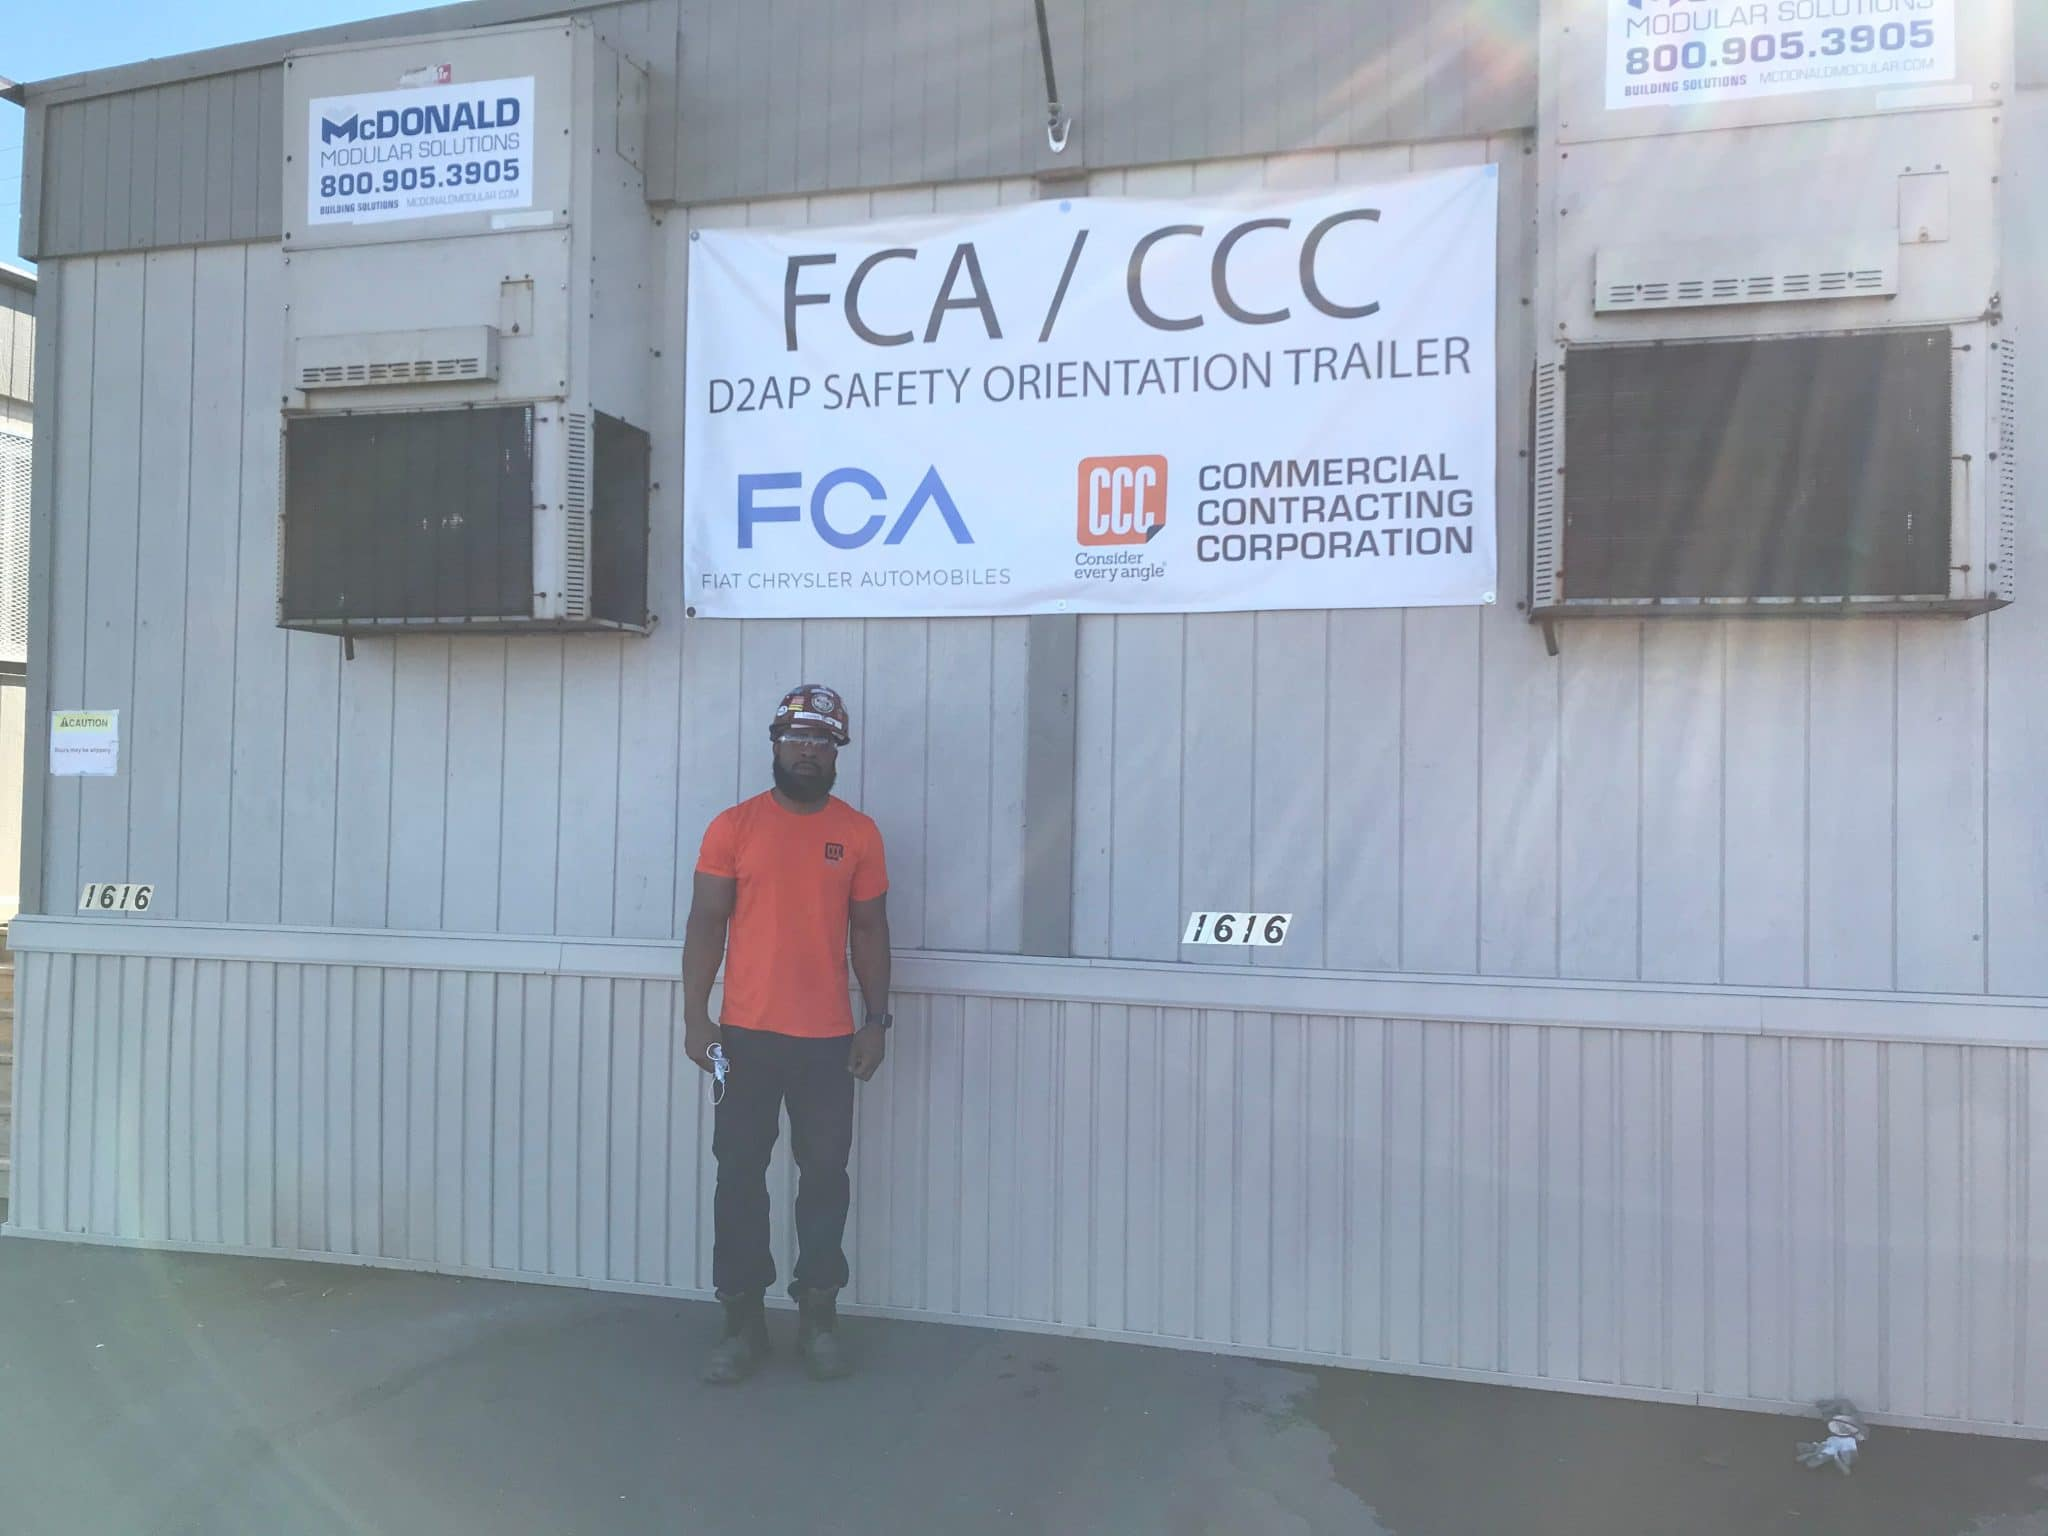 man in protective glasses stands below FCA/CCC sign